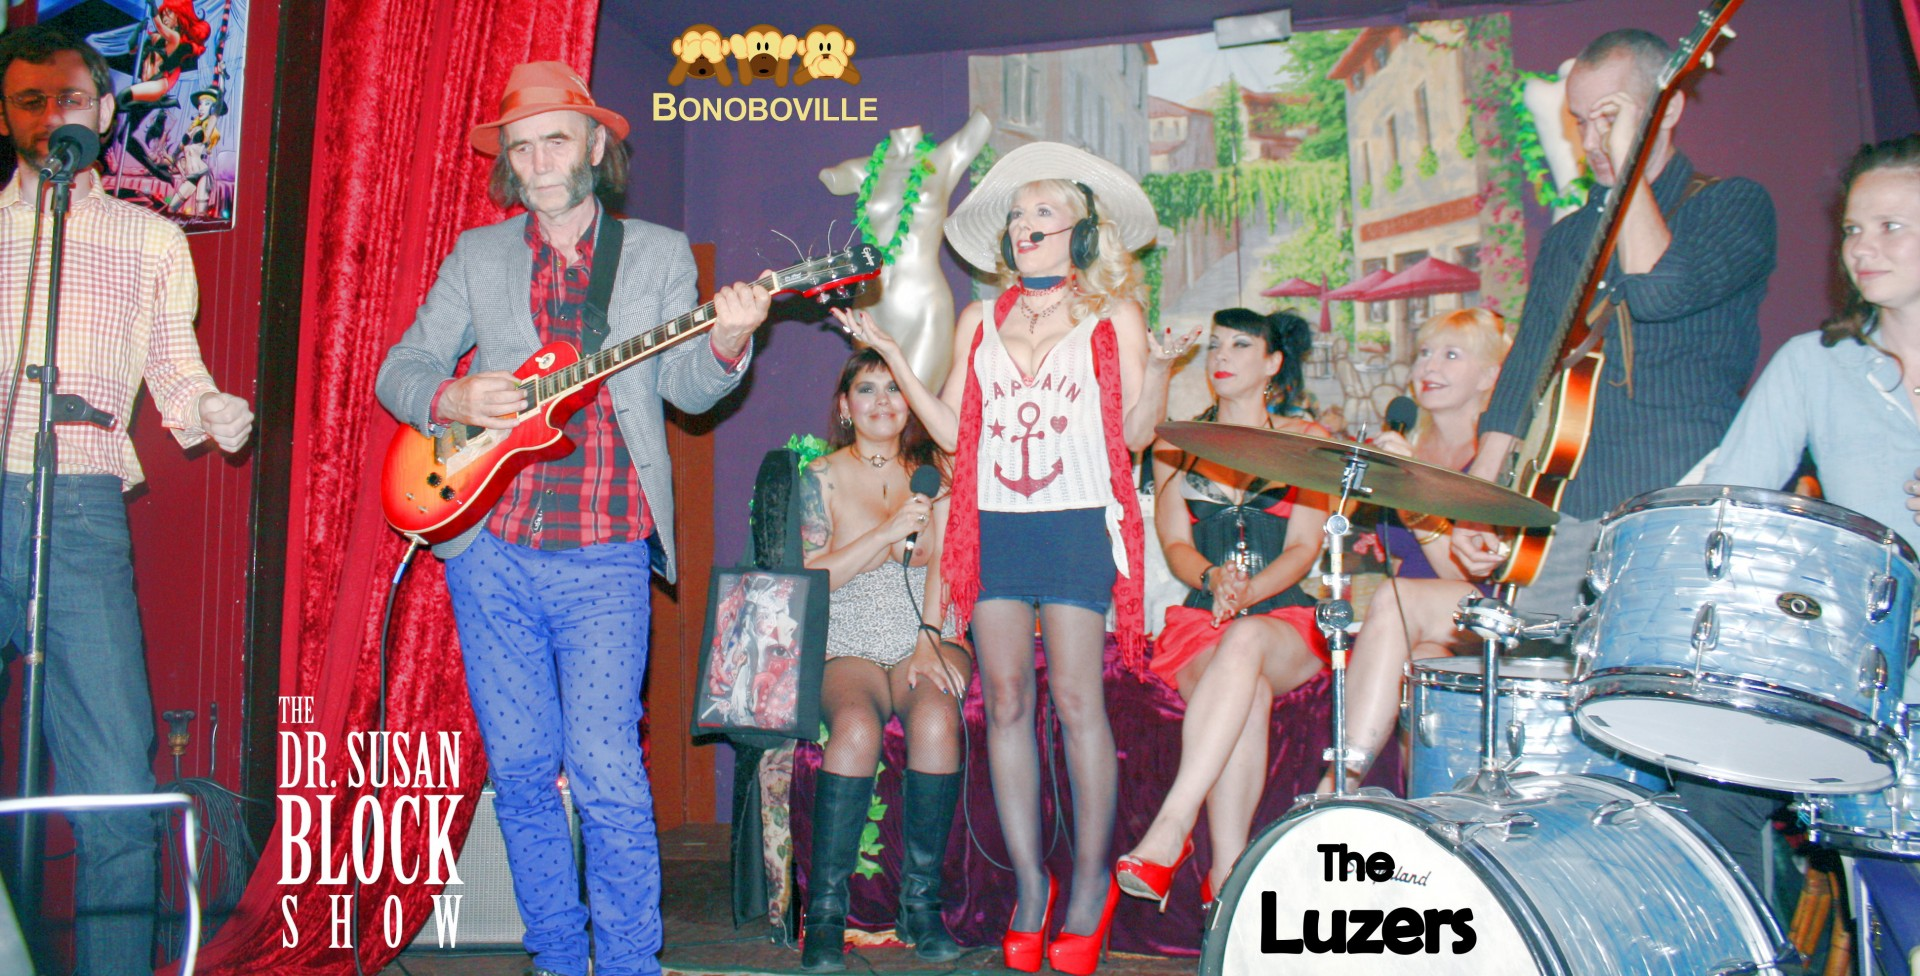 Introducing The LUZERS LiVE from Bonoboville! Photo: Hollywood Jake